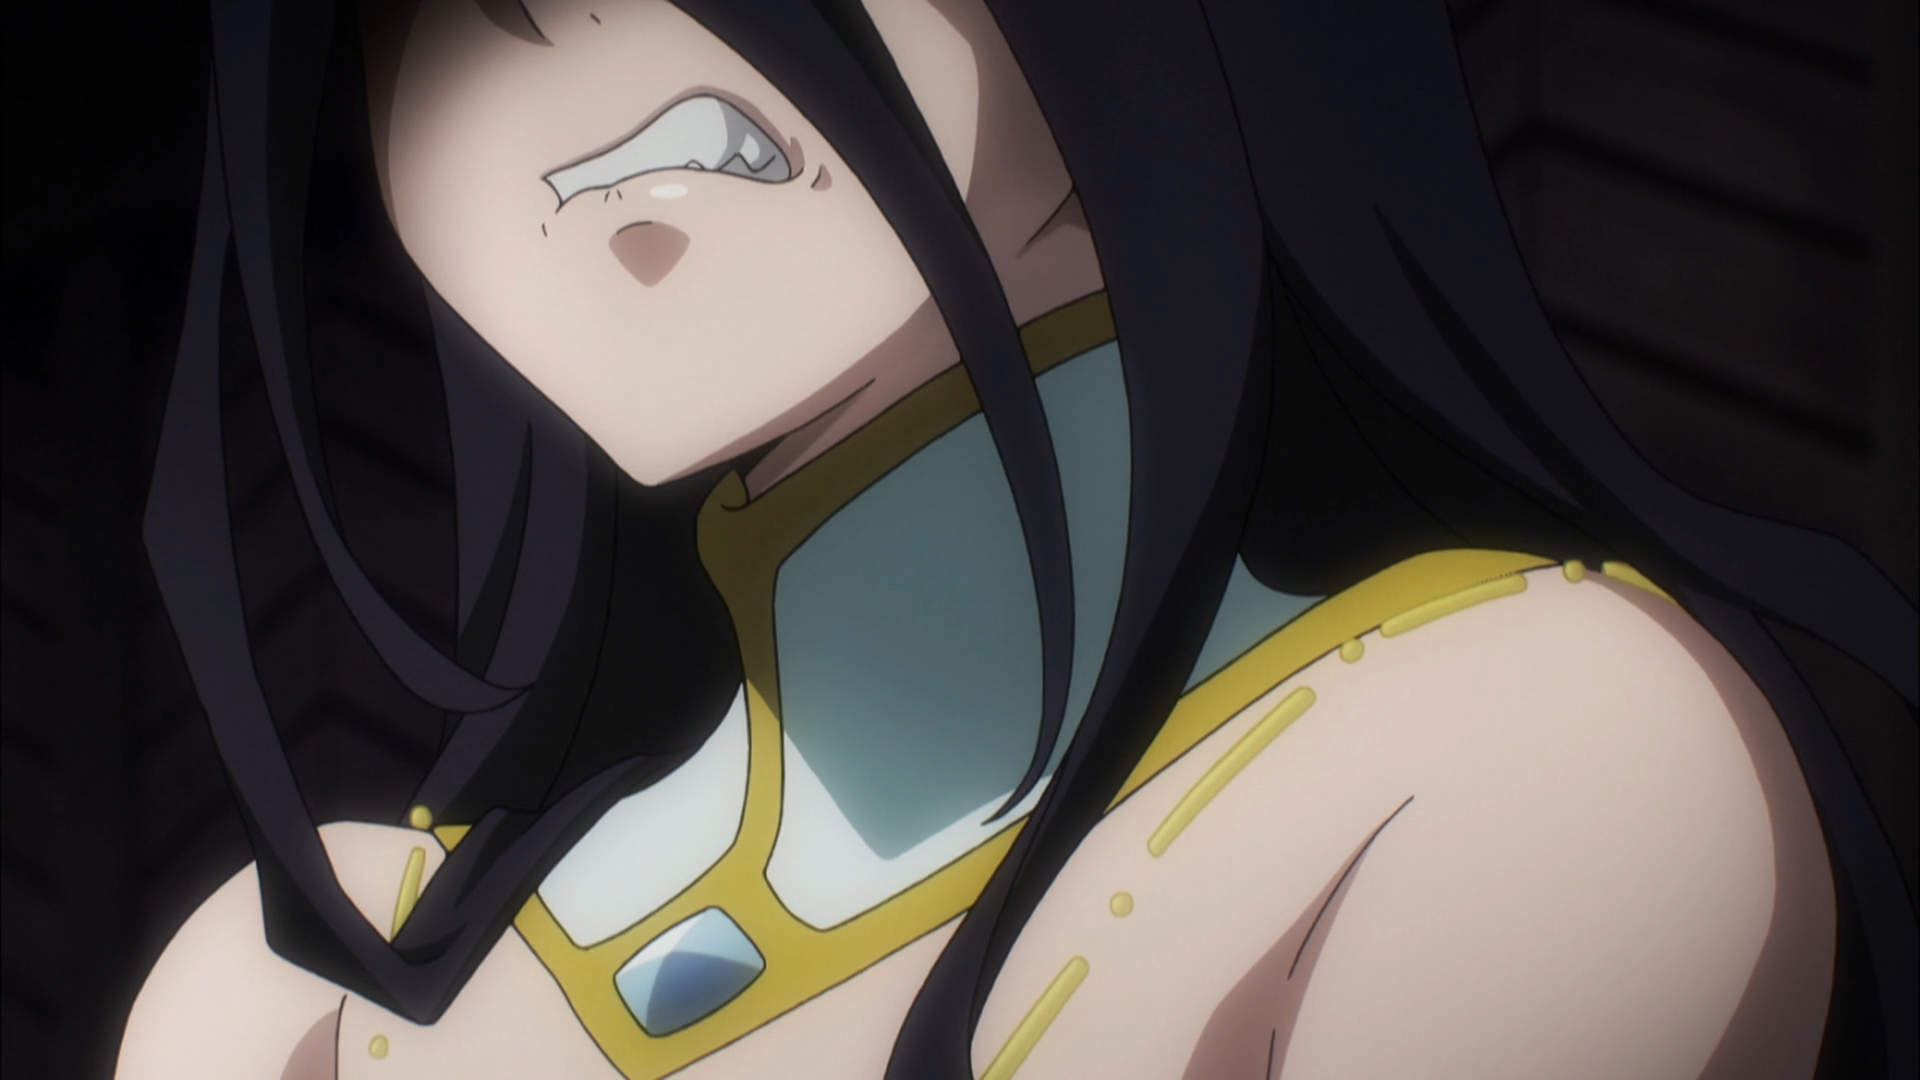 Anime Lizard Porn overlord ii ep. 5: this is a serious post about a serious